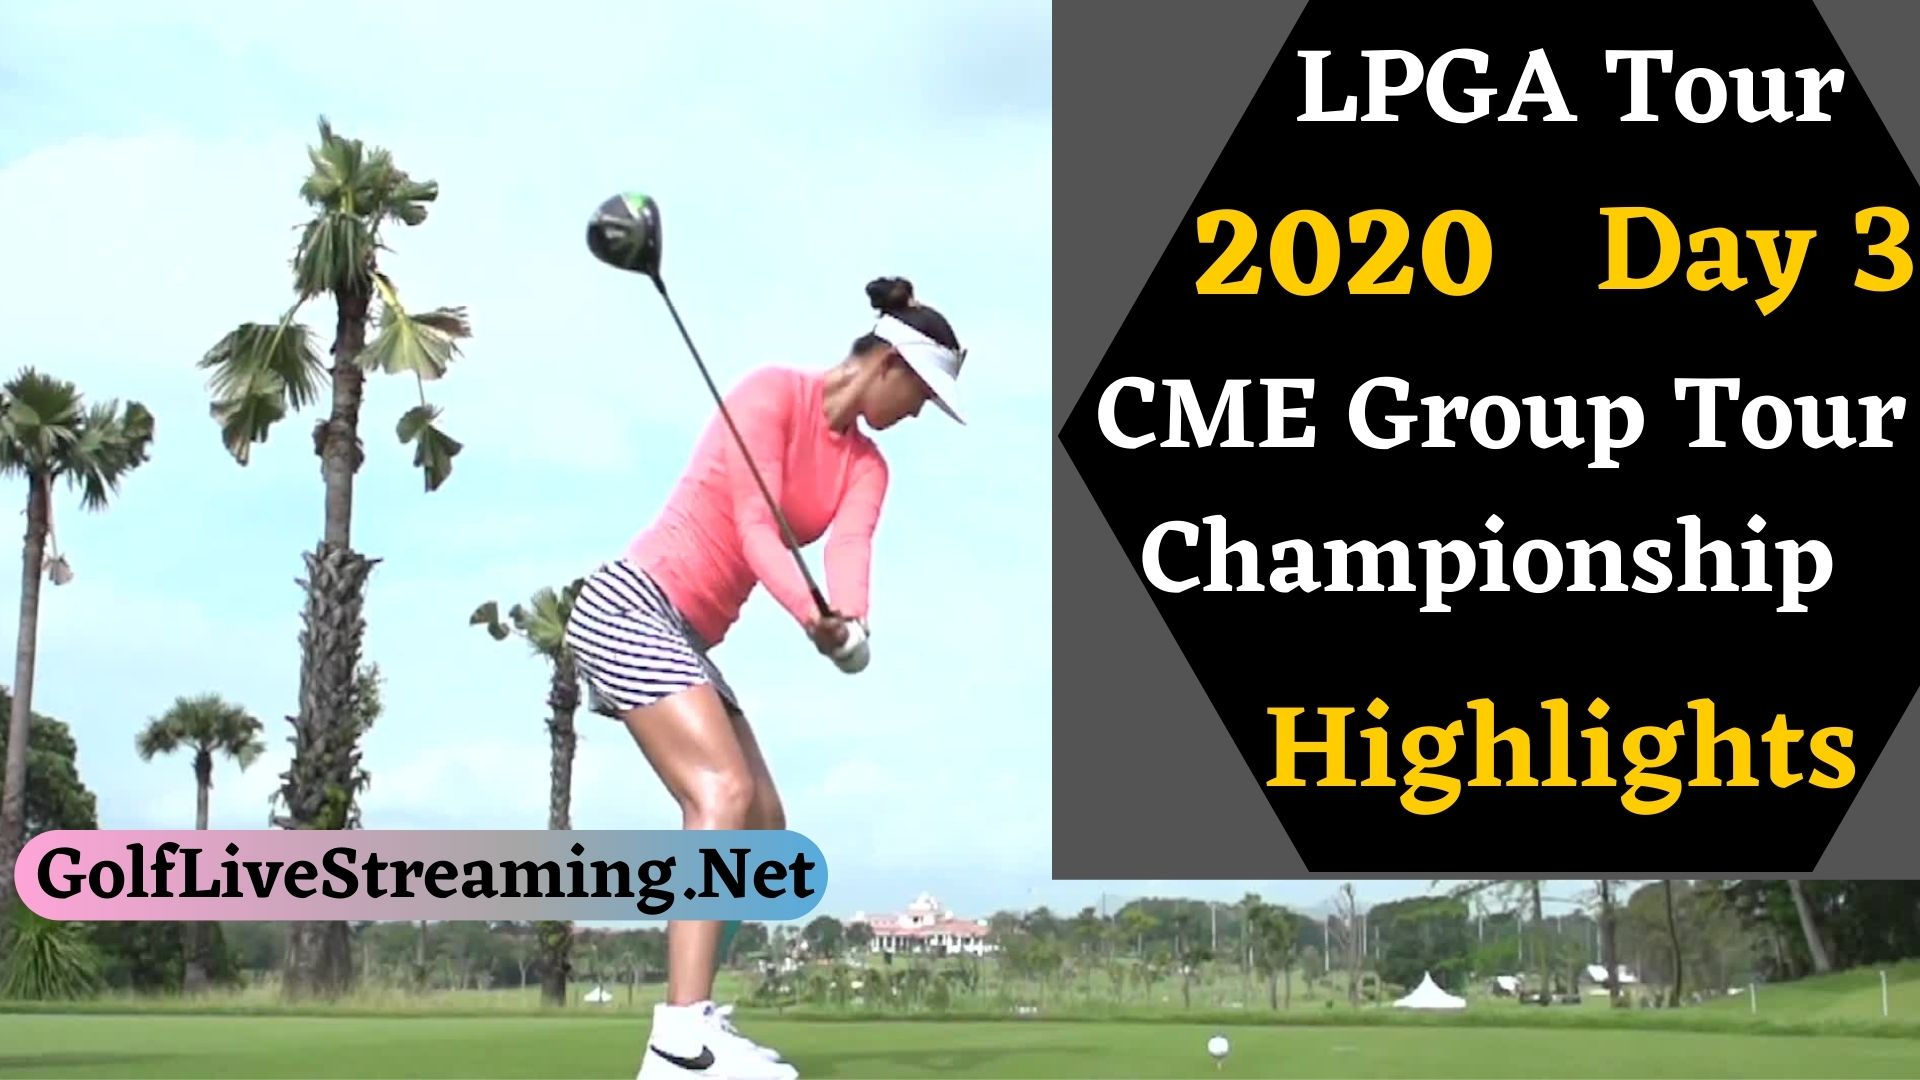 CME Group Tour Championship Day 3 Highlights 2020 LPGA Tour